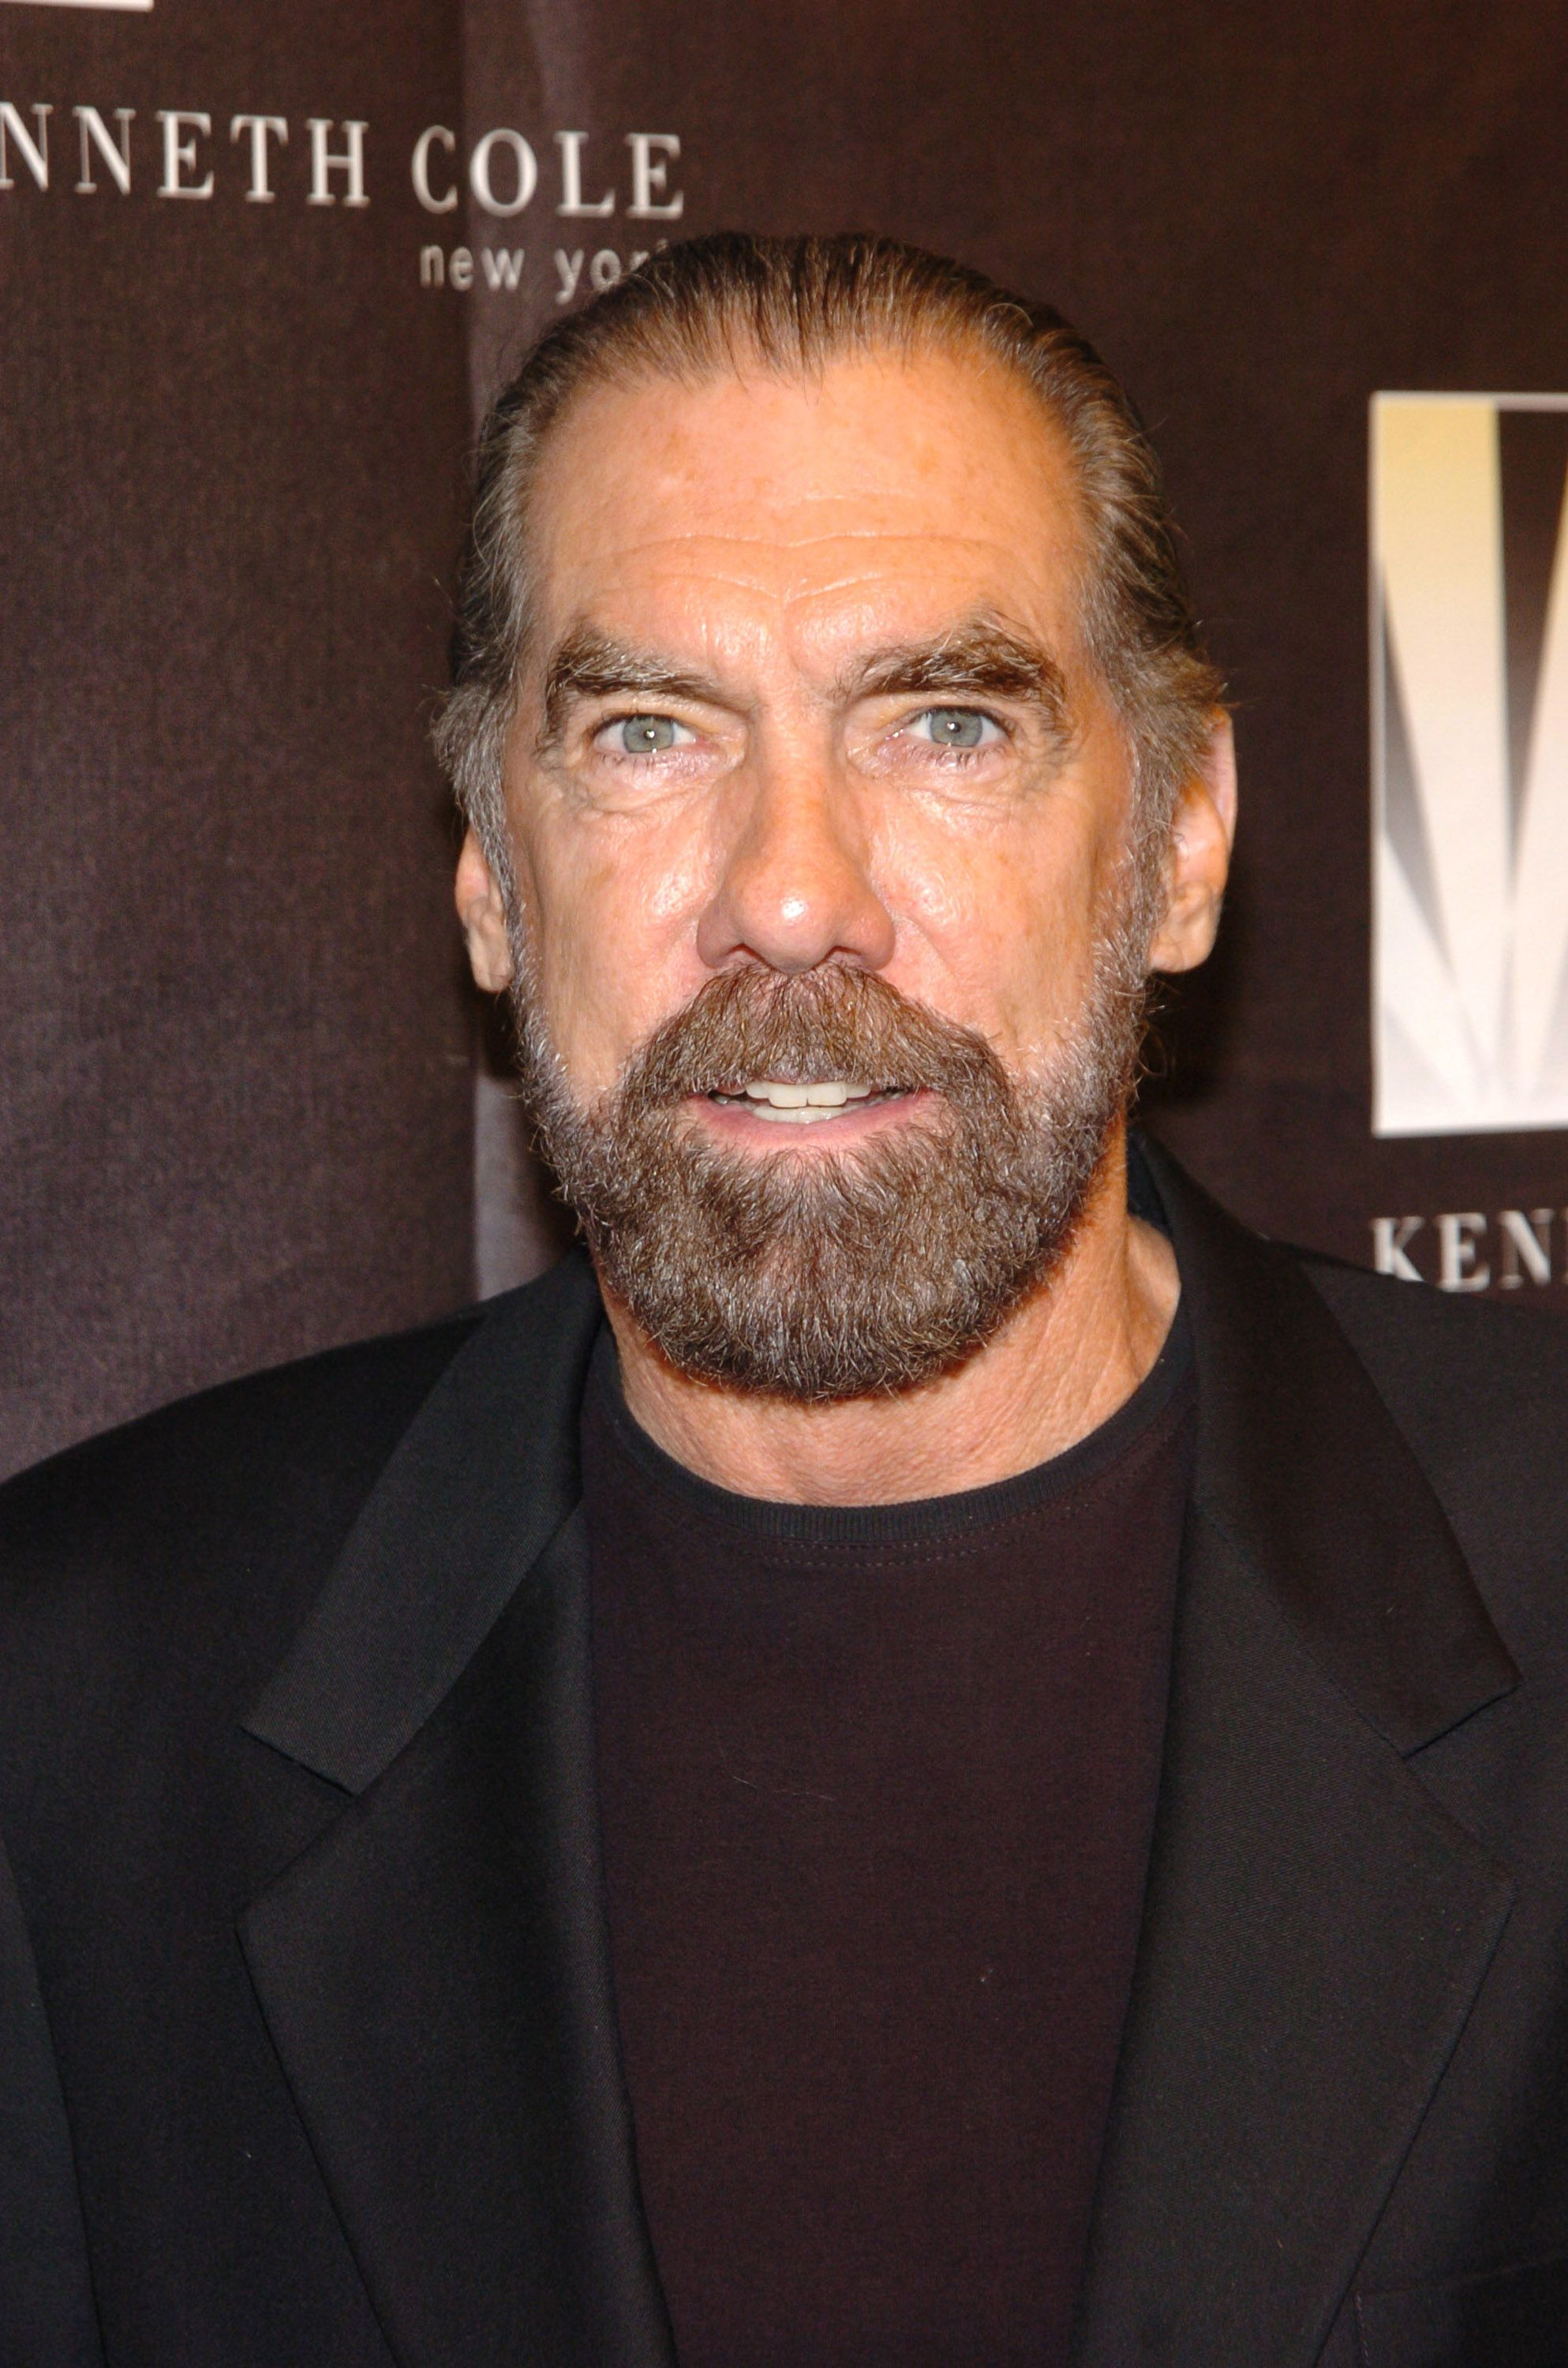 Jean paul dejoria wife sexual dysfunction